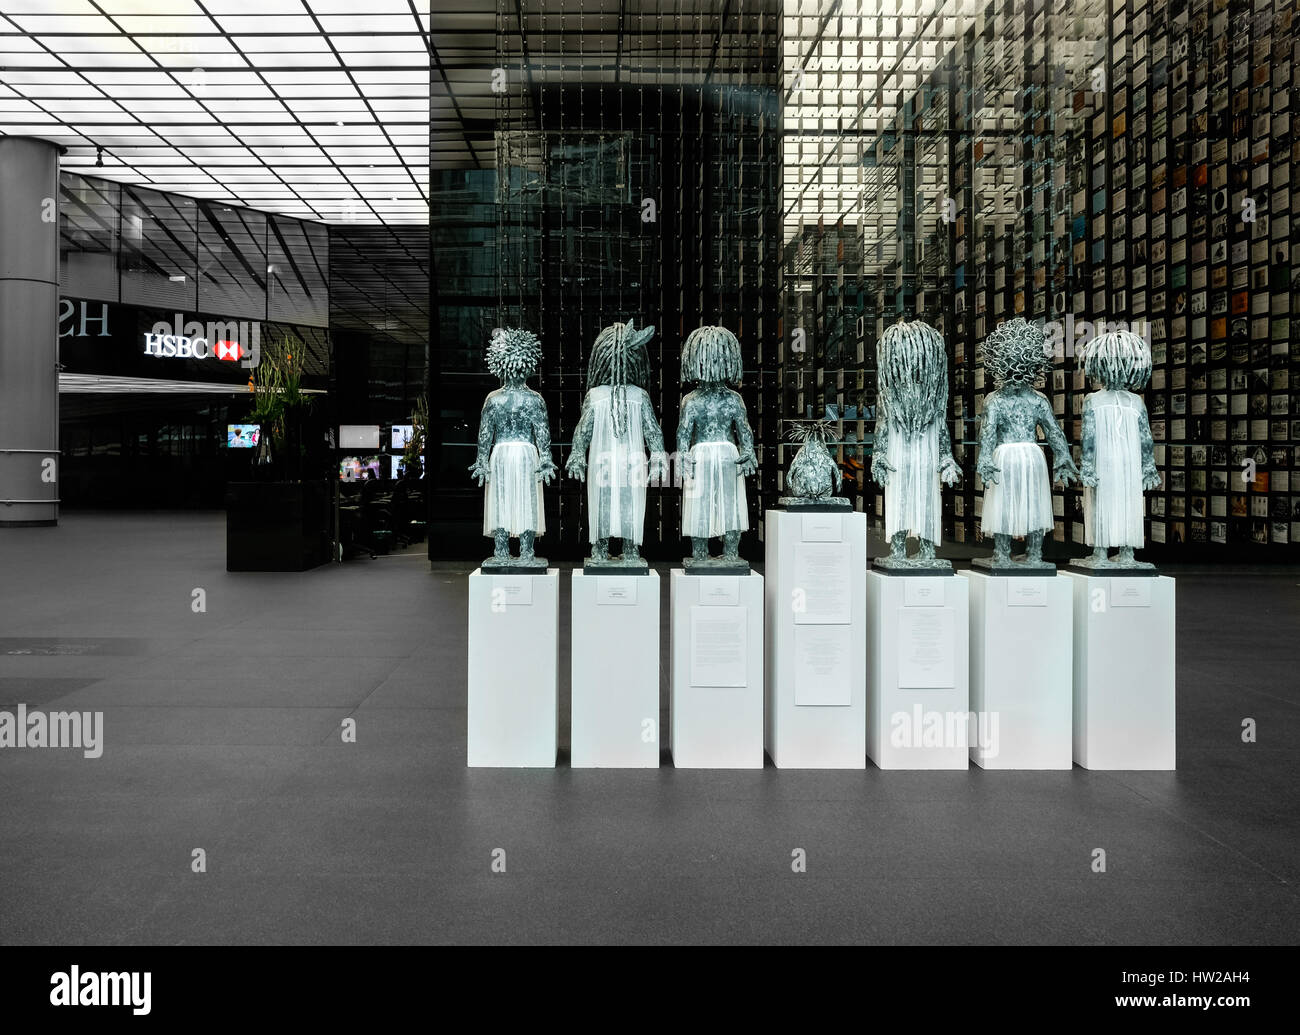 Foyer Display Stock Photos & Foyer Display Stock Images - Alamy